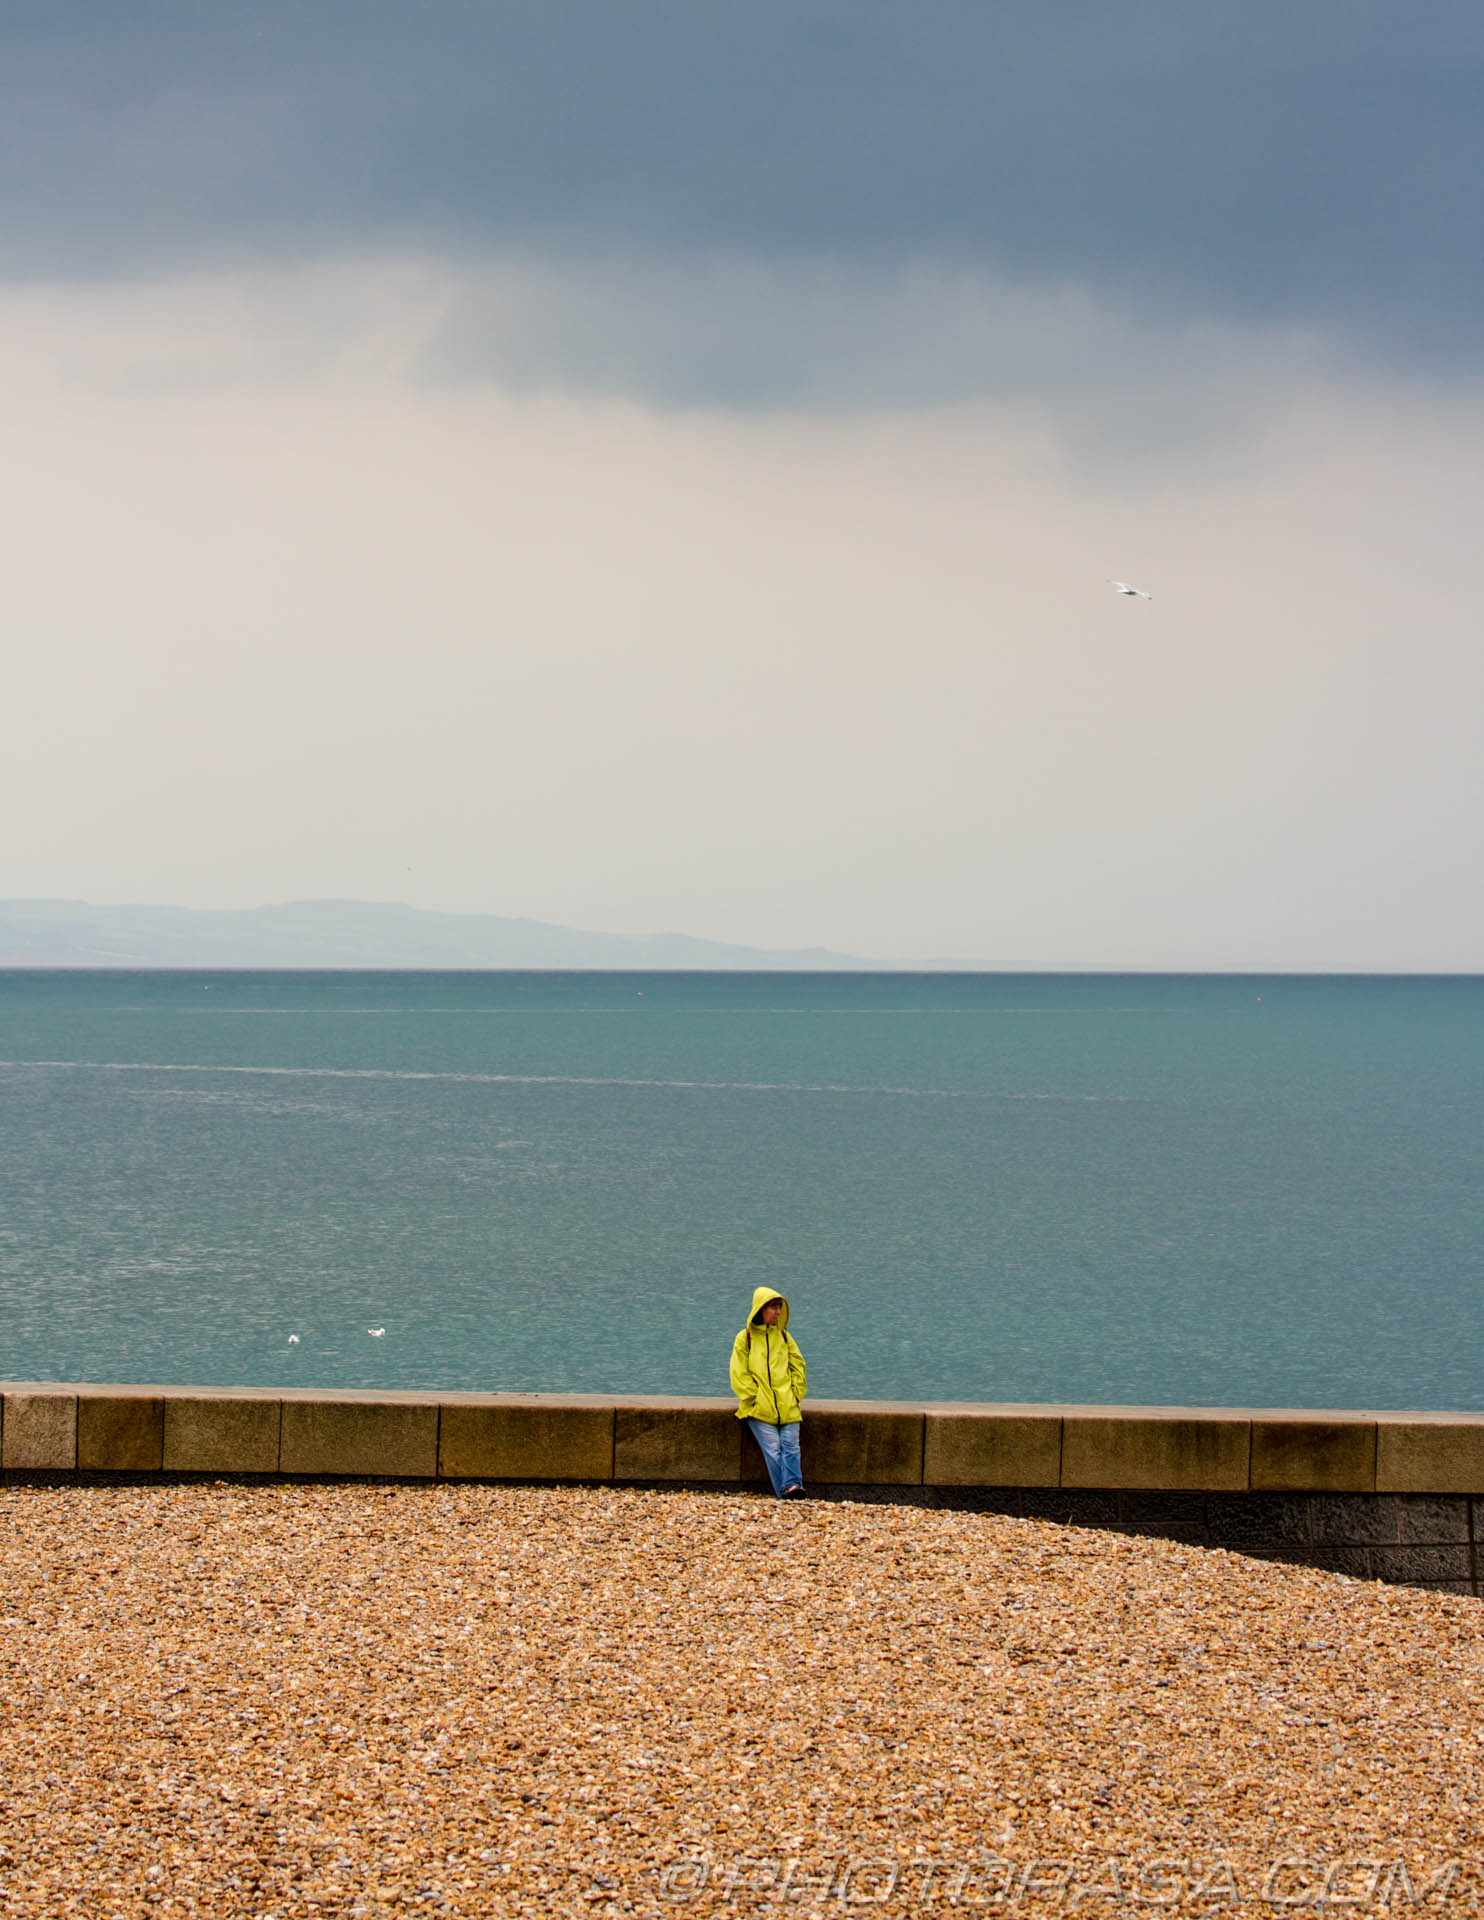 http://photorasa.com/sea-lyme-regis/yellow-mac-by-the-sea/